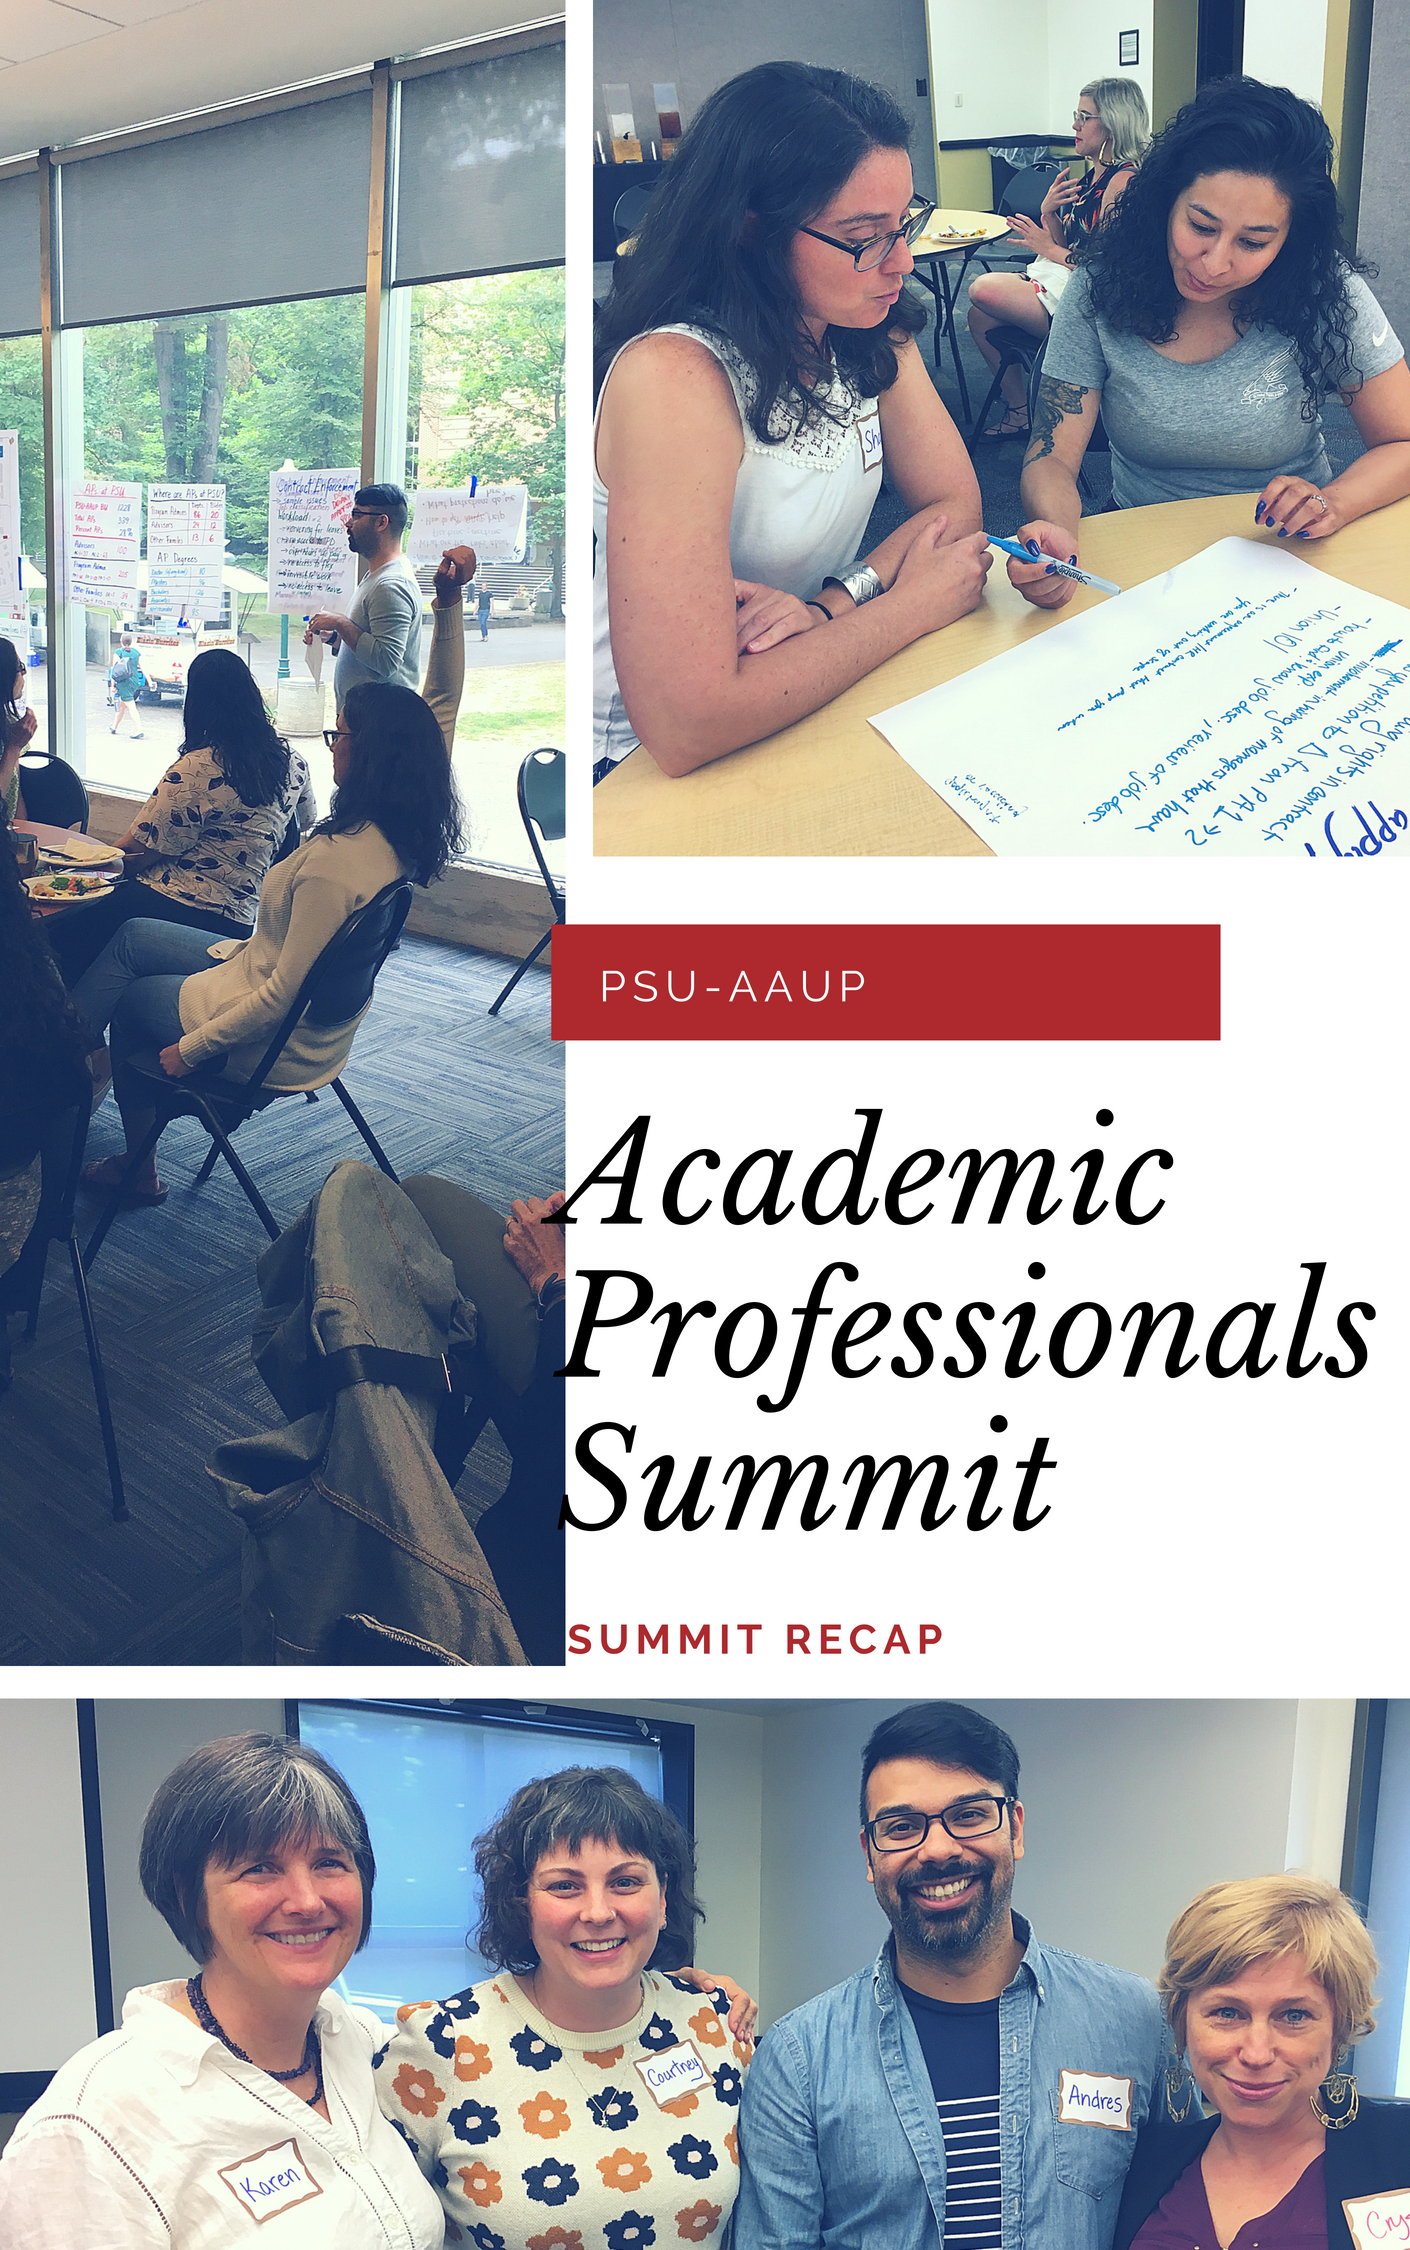 Academic Professionals Summer Summit Recap